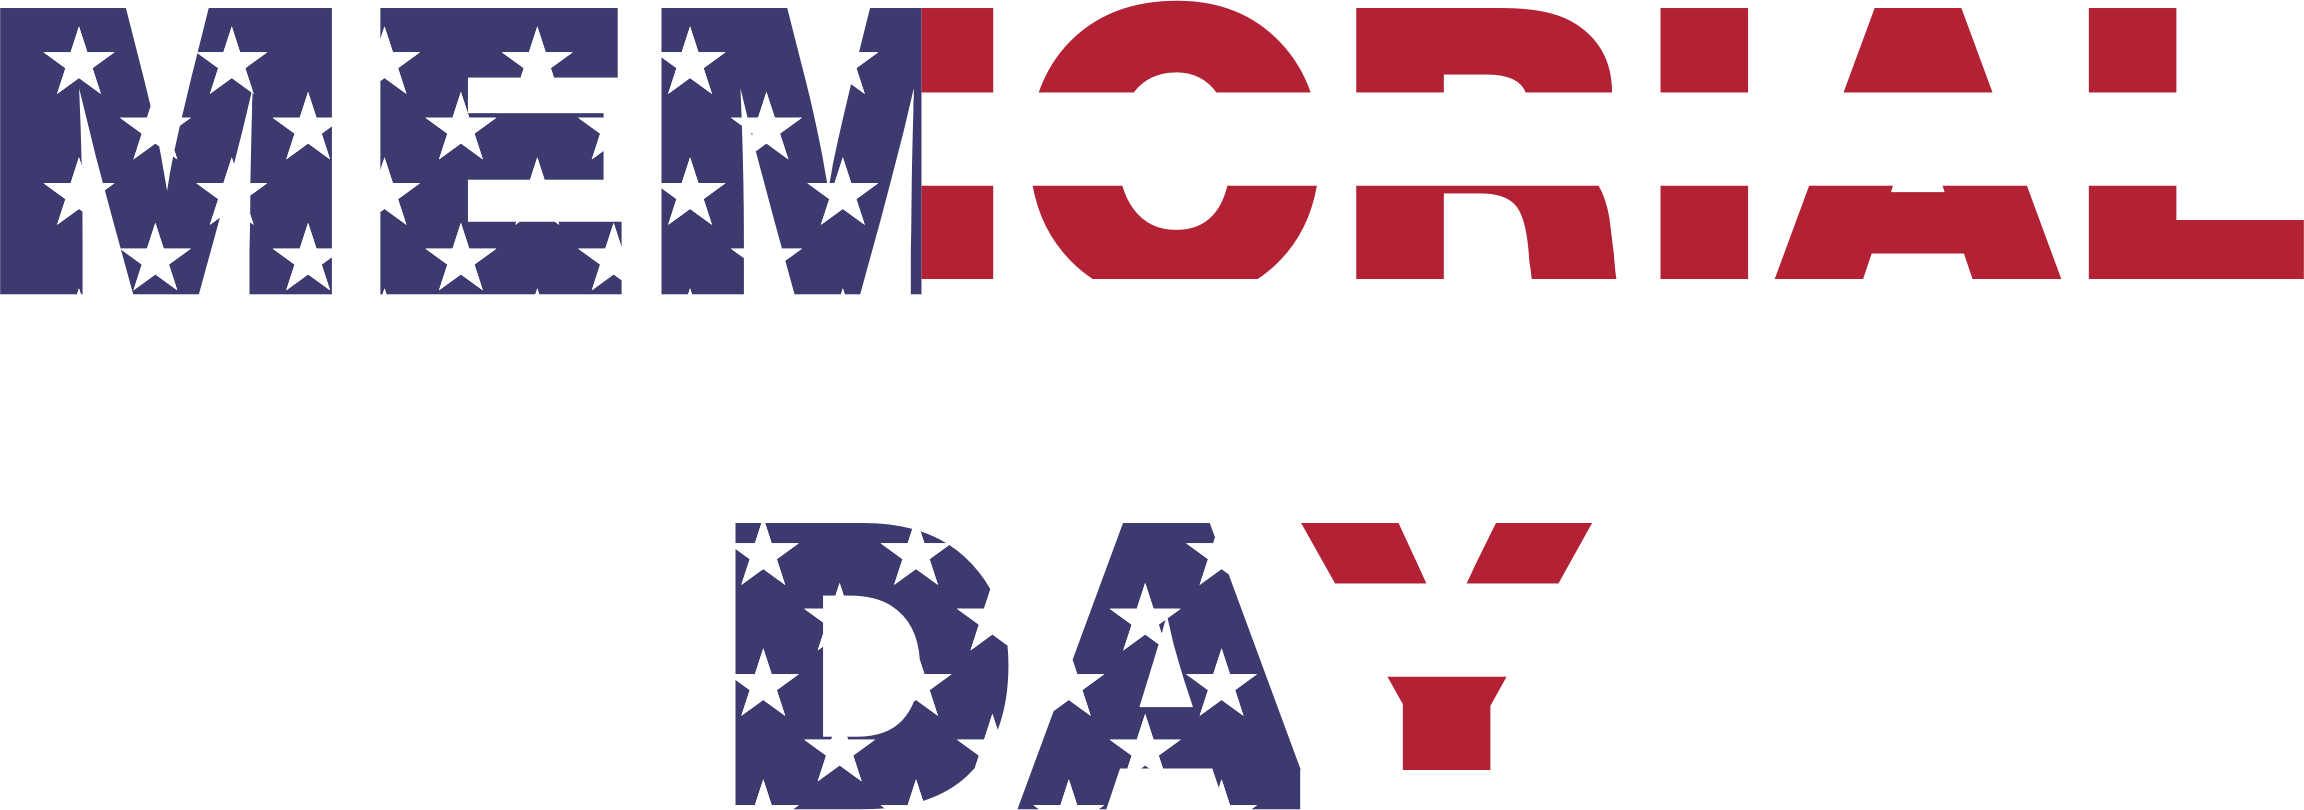 Picture clipart memorial day. Typography big image png